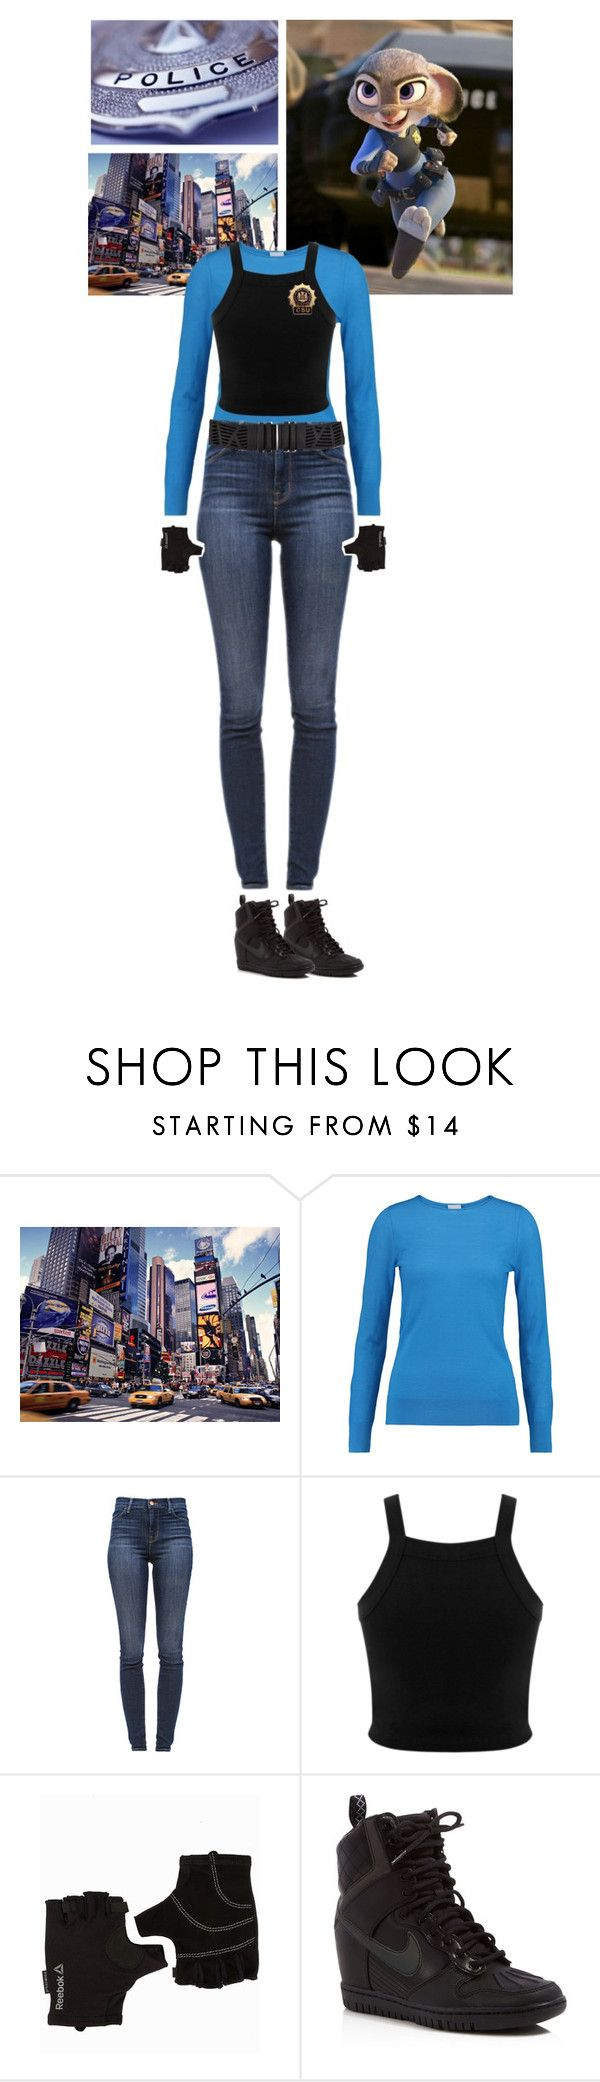 """""""zootopia: judy hopps"""" by novemberwitch ❤ liked on Polyvore featuring Iris & Ink, J Brand, Miss Selfridge, Reebok, NIKE, POLICE, women's clothing, women, female and woman"""